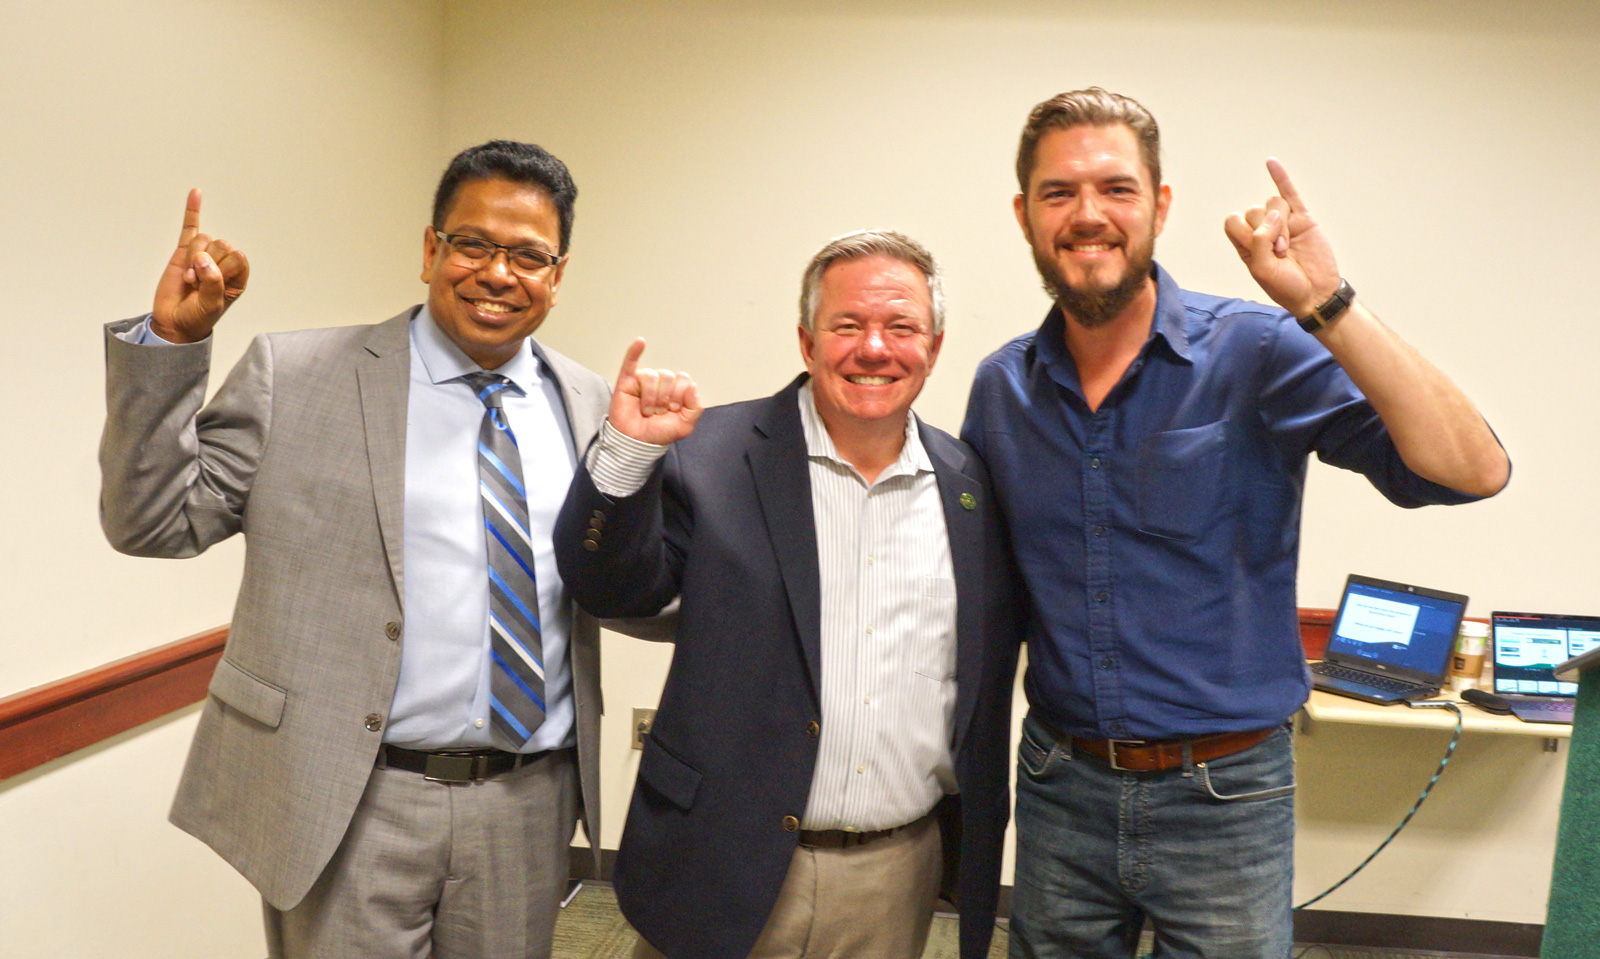 Breakfast with Champions: Legendary Dale Carlsen Meets with Sacramento Student Leaders